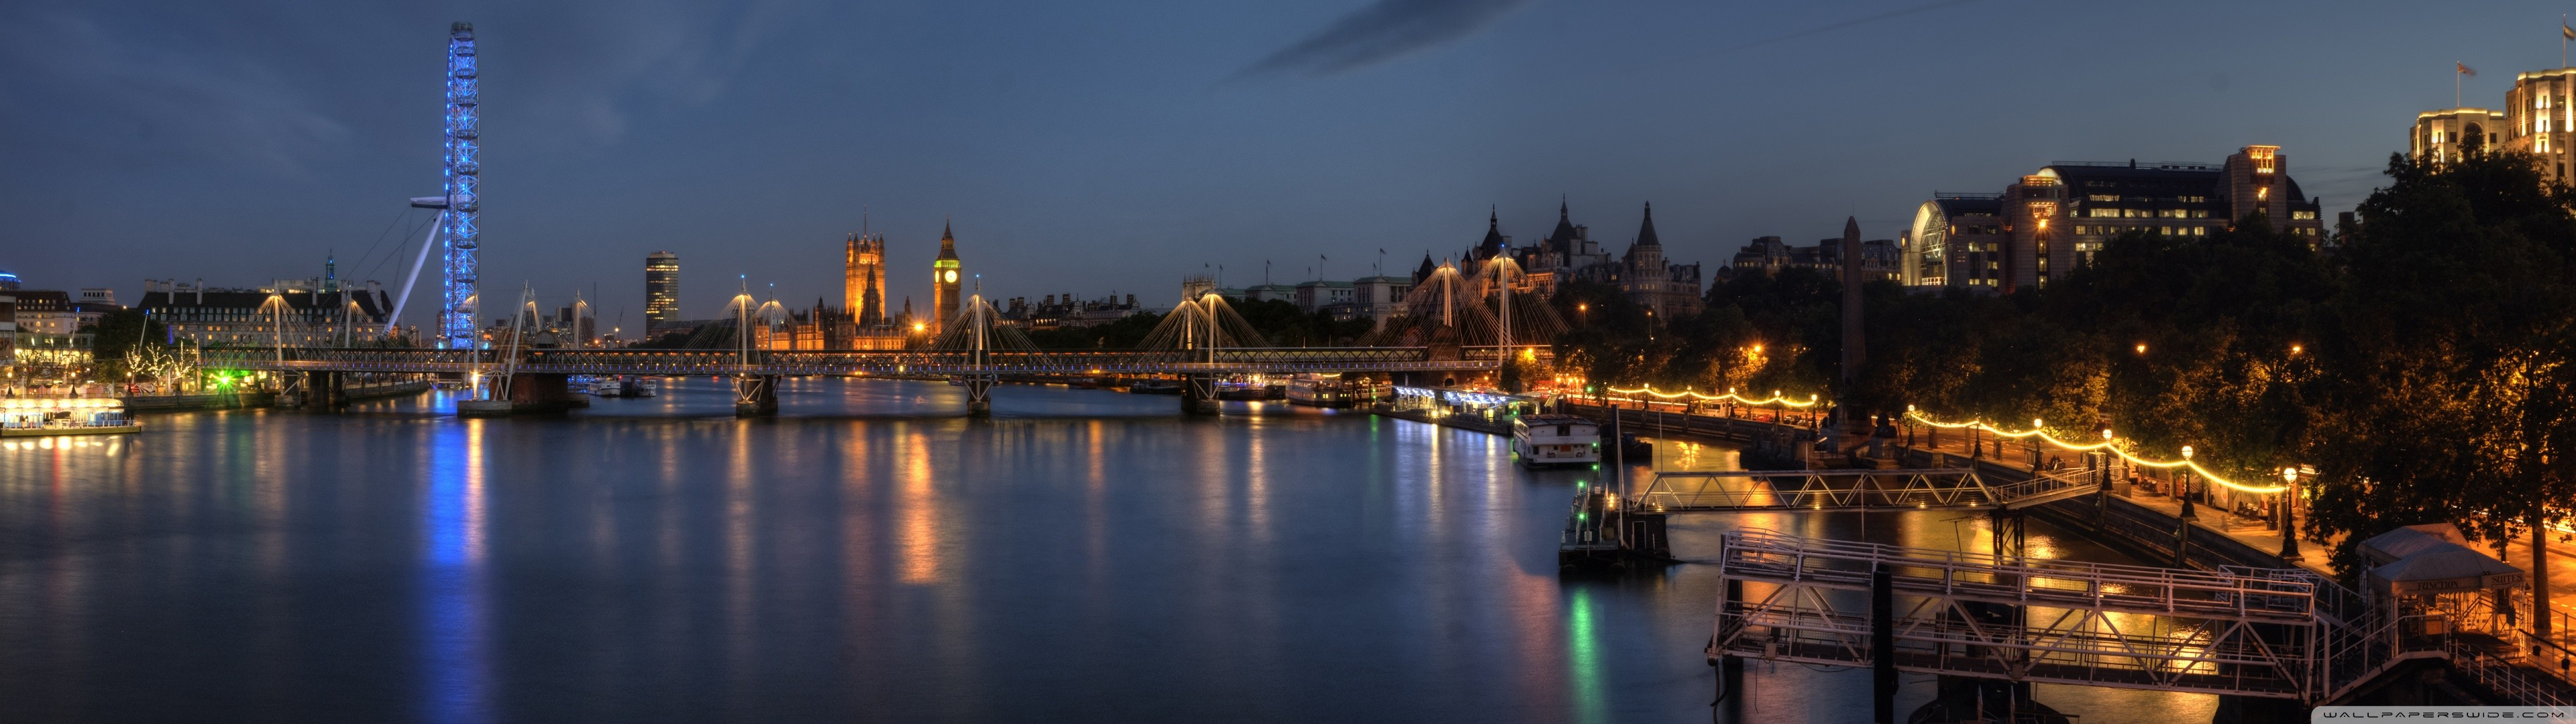 General 3840x1080 cityscape city skyline London London Eye Big Ben River Thames UK lights river water